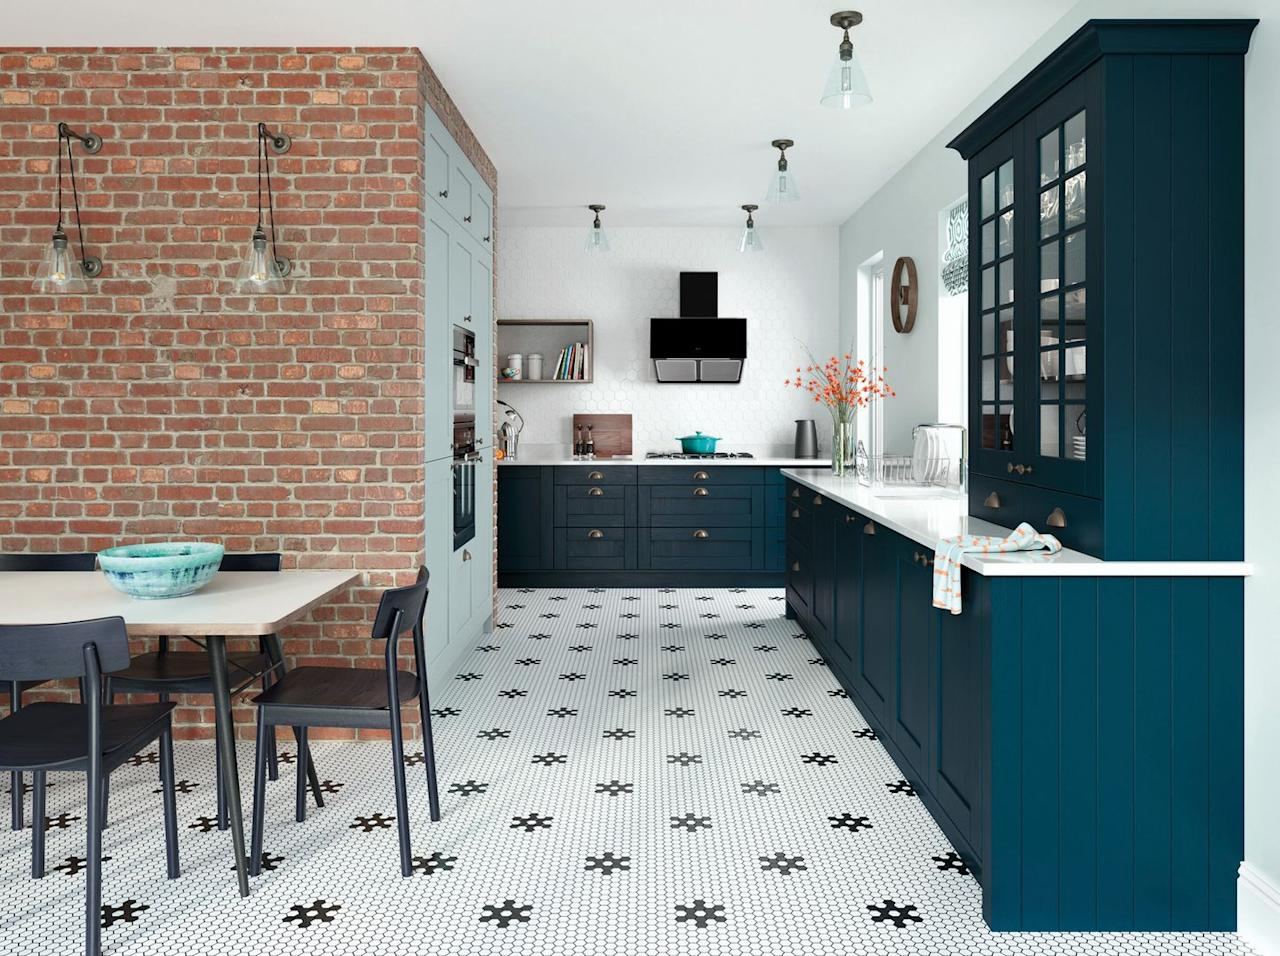 "<p>Create a statement in your kitchen with bold, vibrant hues. Whether you opt for midnight-sky blue or daringly dark olive green, statement kitchen cabinets are simple ways to create an Instagram-worthy look. Use pared-back, neutral tiles, such as whites and creams, to balance out a daring colour palette. Make your kitchen look fabulous. </p><p>'Darker images tend to be noticed more on Instagram so a darker, richer colour such as blue to anthracite can make your kitchen look more striking,' Doug Haswell from <a href=""https://www.caple.co.uk/products/kitchens/"" target=""_blank"">Caple Kitchens</a> explains. <br><br>If you don't have the budget or means for a complete kitchen overhaul, why not up-cycle your kitchen cabinets with a fresh lick of paint? Simply sand them down and find the right colour for you. </p>"